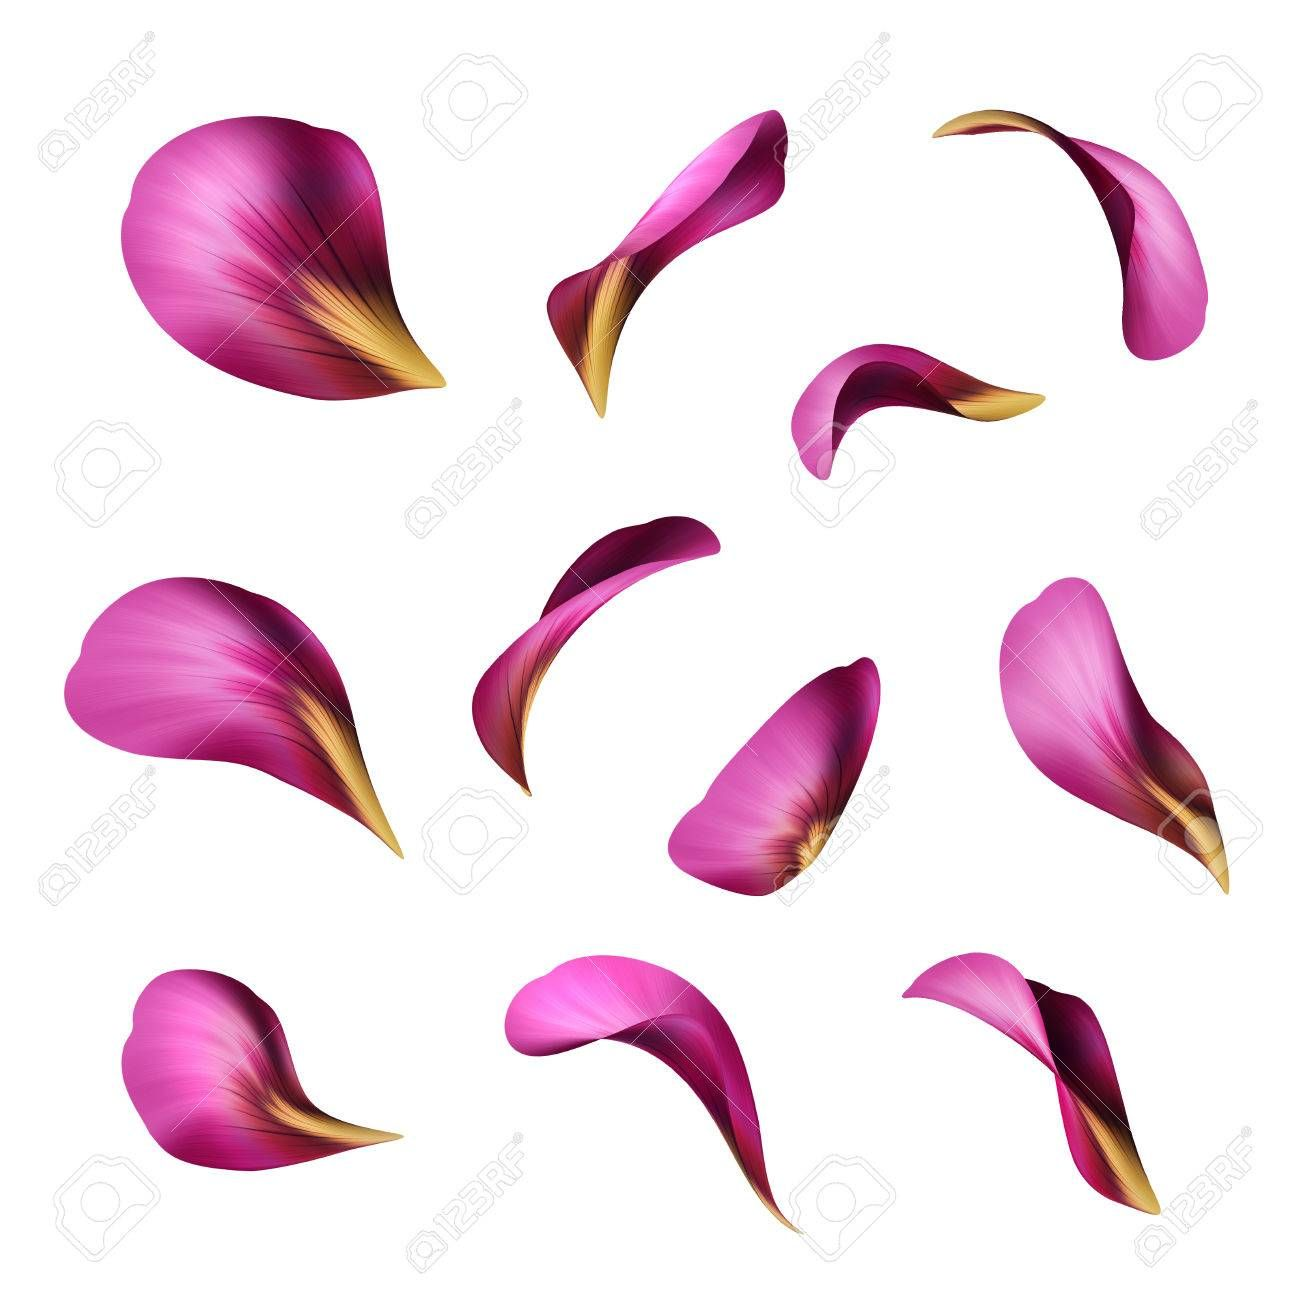 Purple Flower Petals Botanical Illustration Floral Clip Art Flower Petal Art Flower Petals Rose Petals Drawing